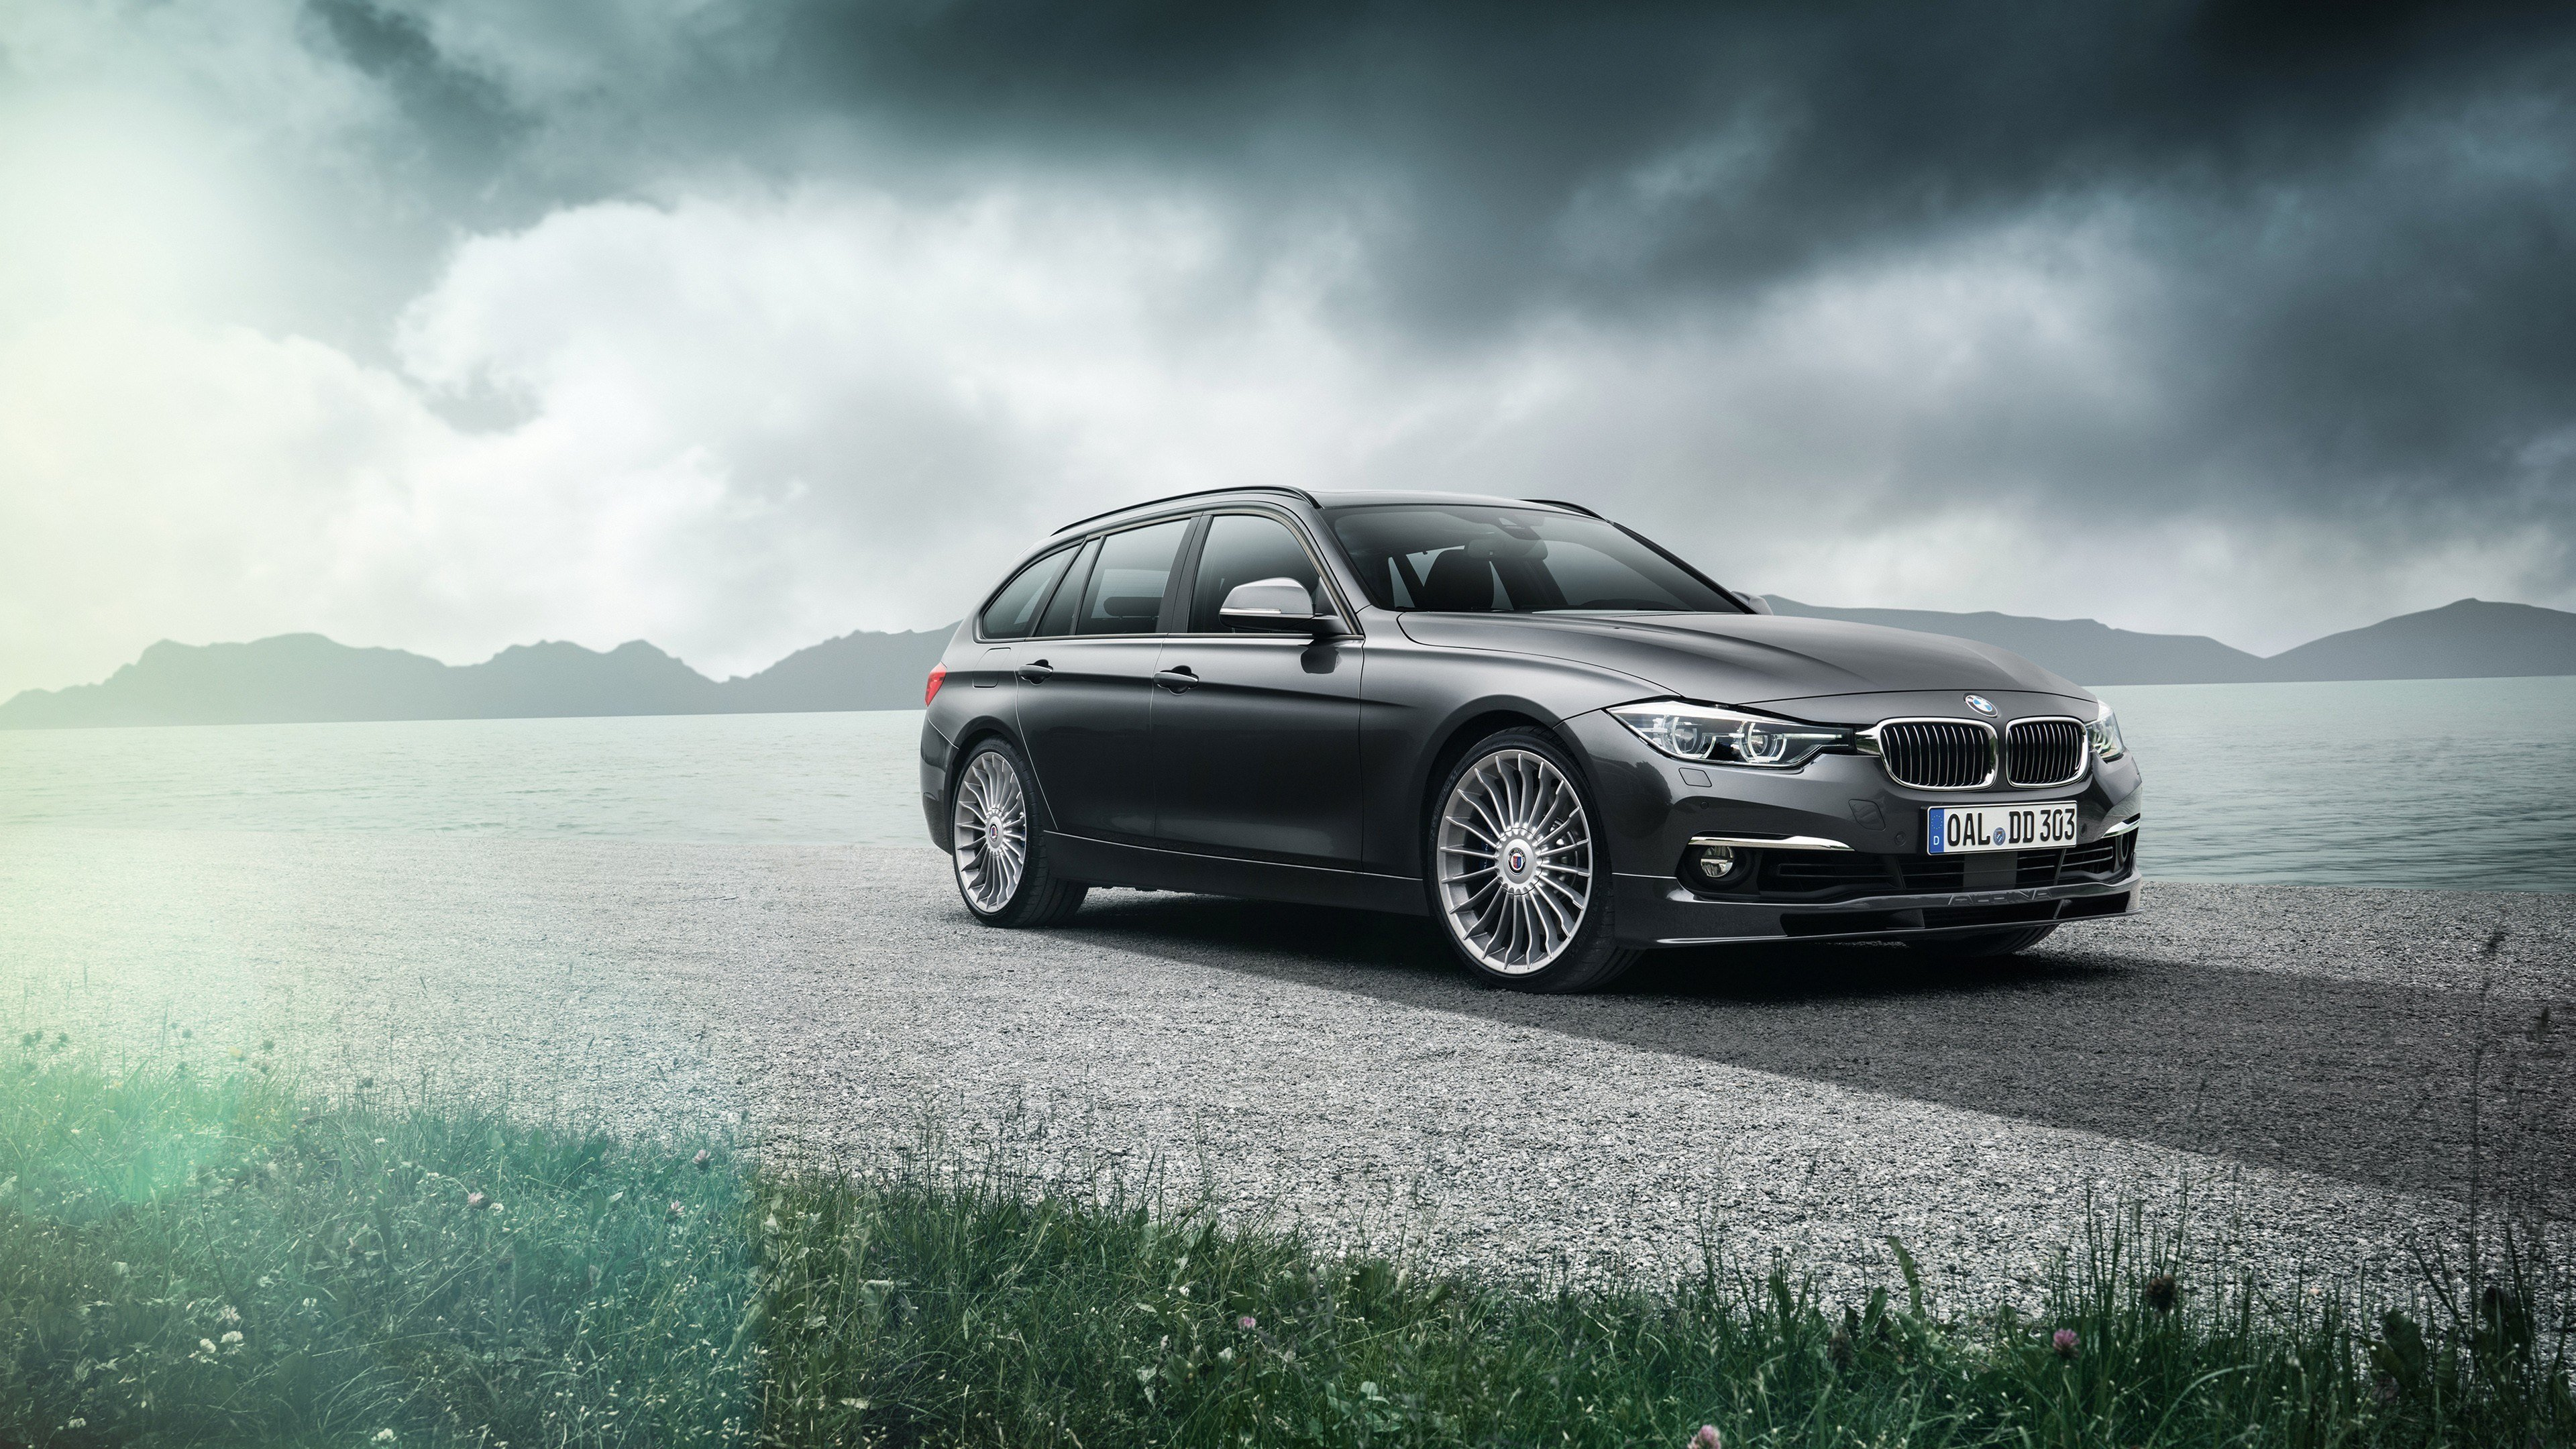 Latest 2015 Alpina D3 Bmw 3 Series Wallpaper Hd Car Wallpapers Free Download